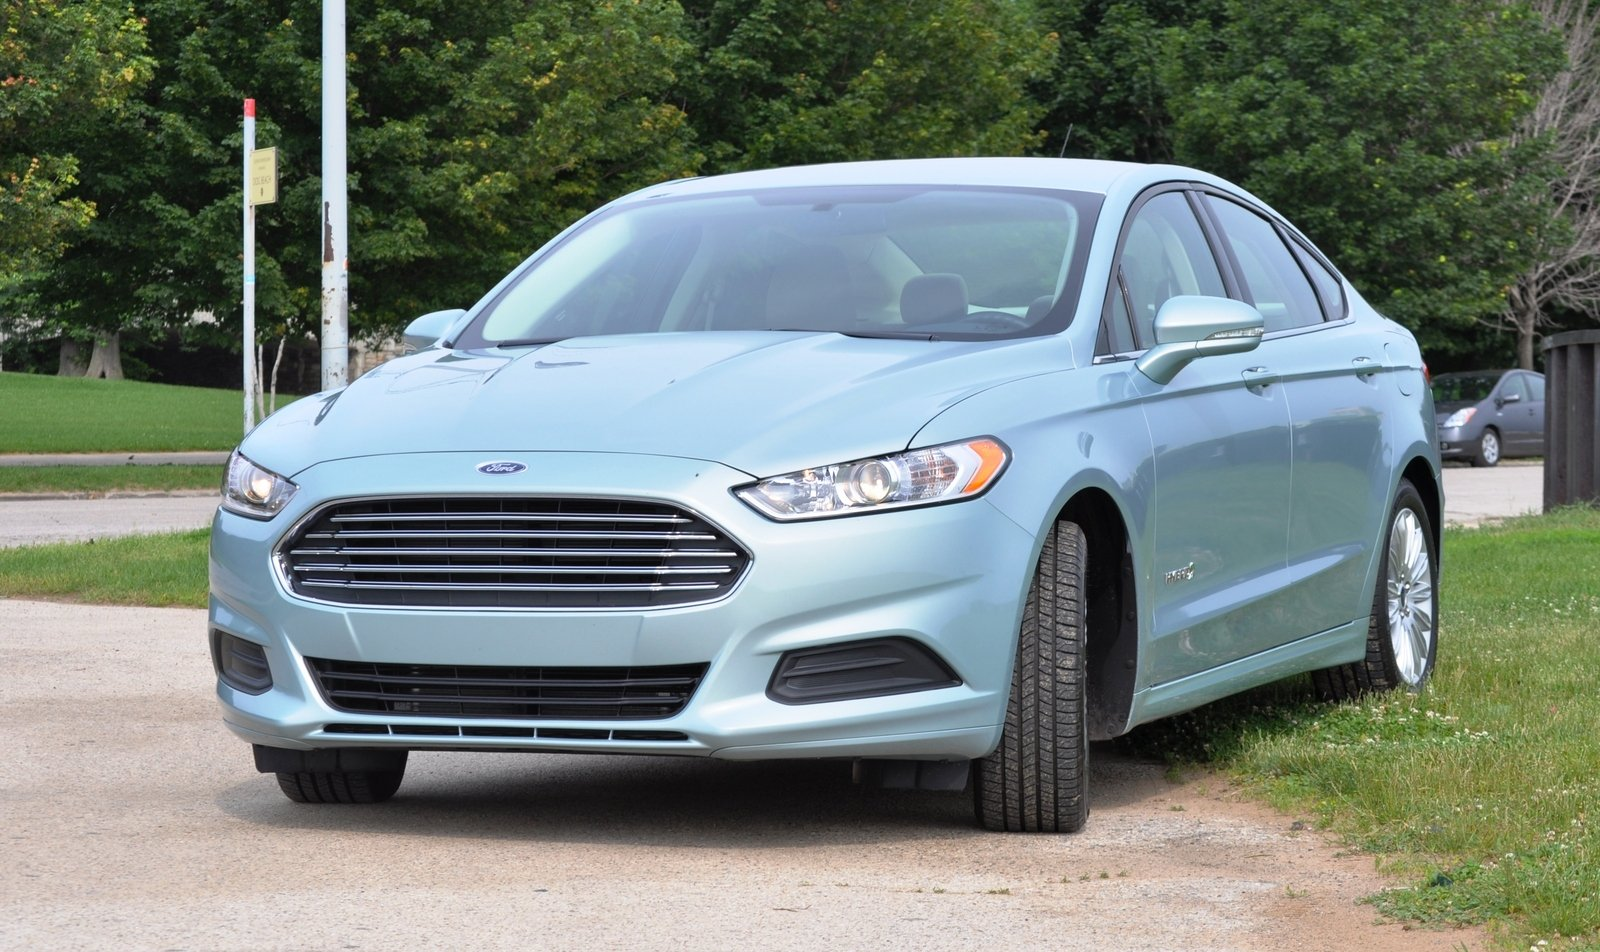 2014 ford fusion hybrid picture 512559 car review top speed. Cars Review. Best American Auto & Cars Review